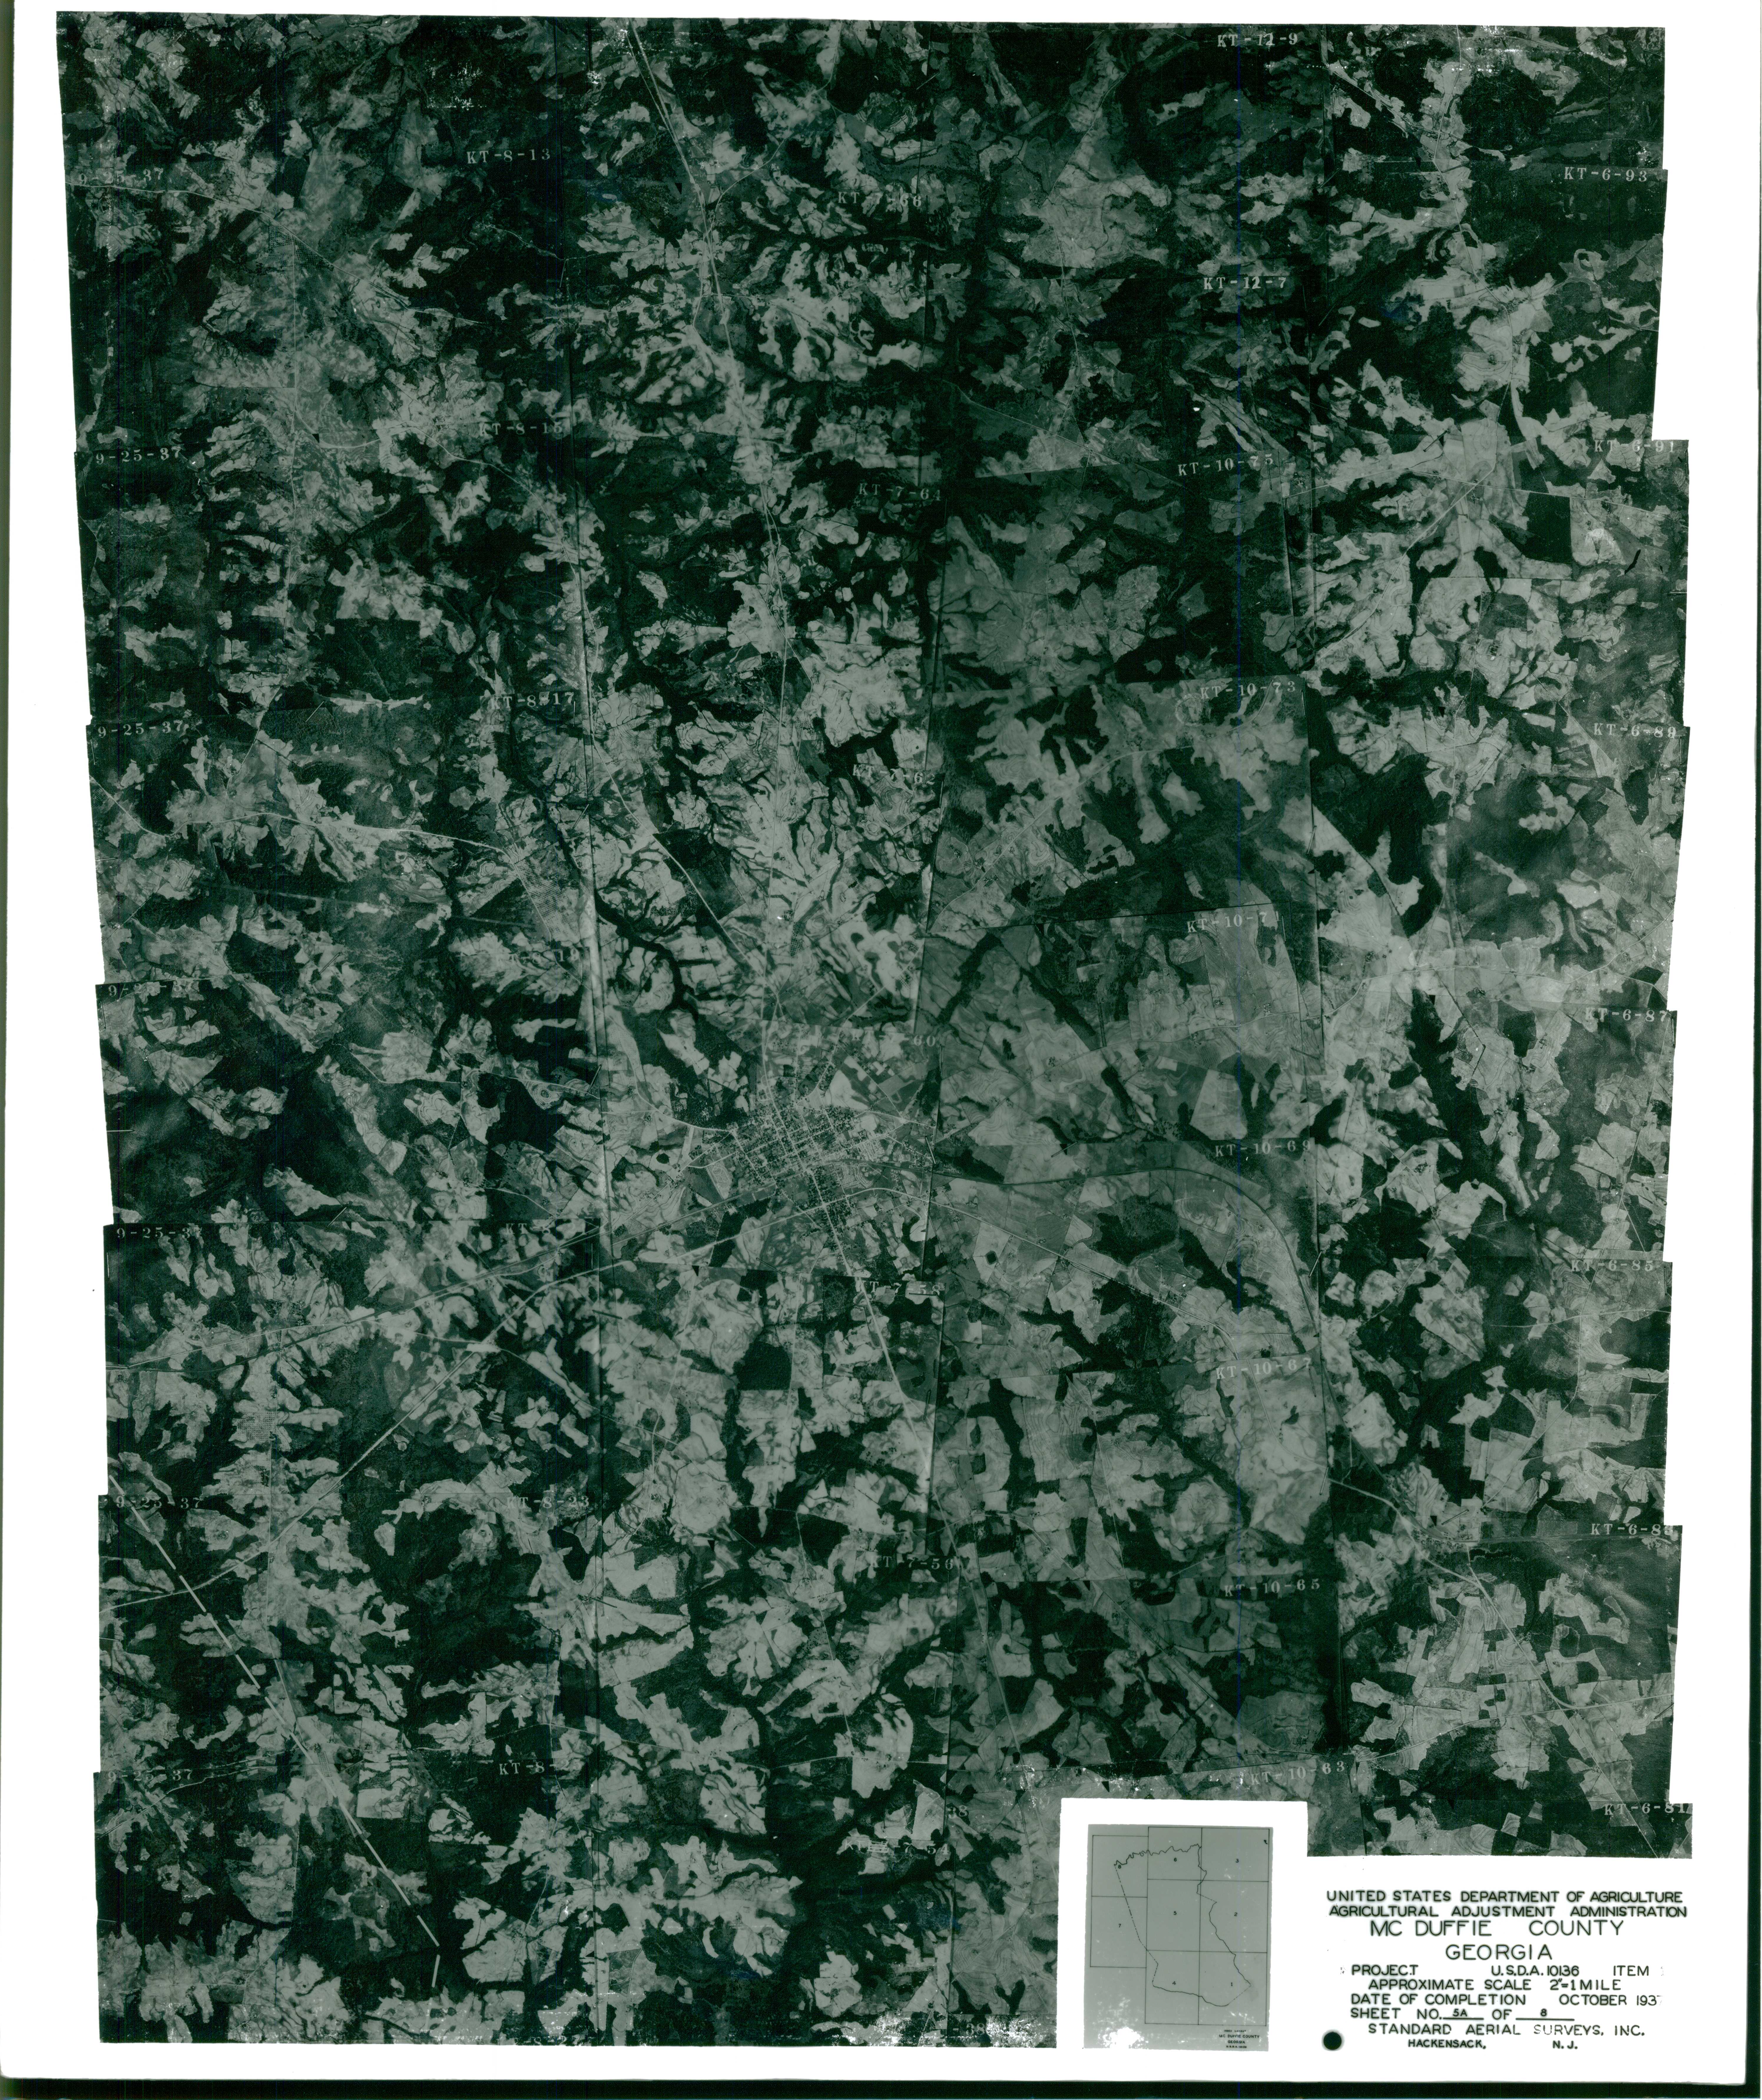 Aerial Photography Index for McDuffie County, Georgia, Sheet 5